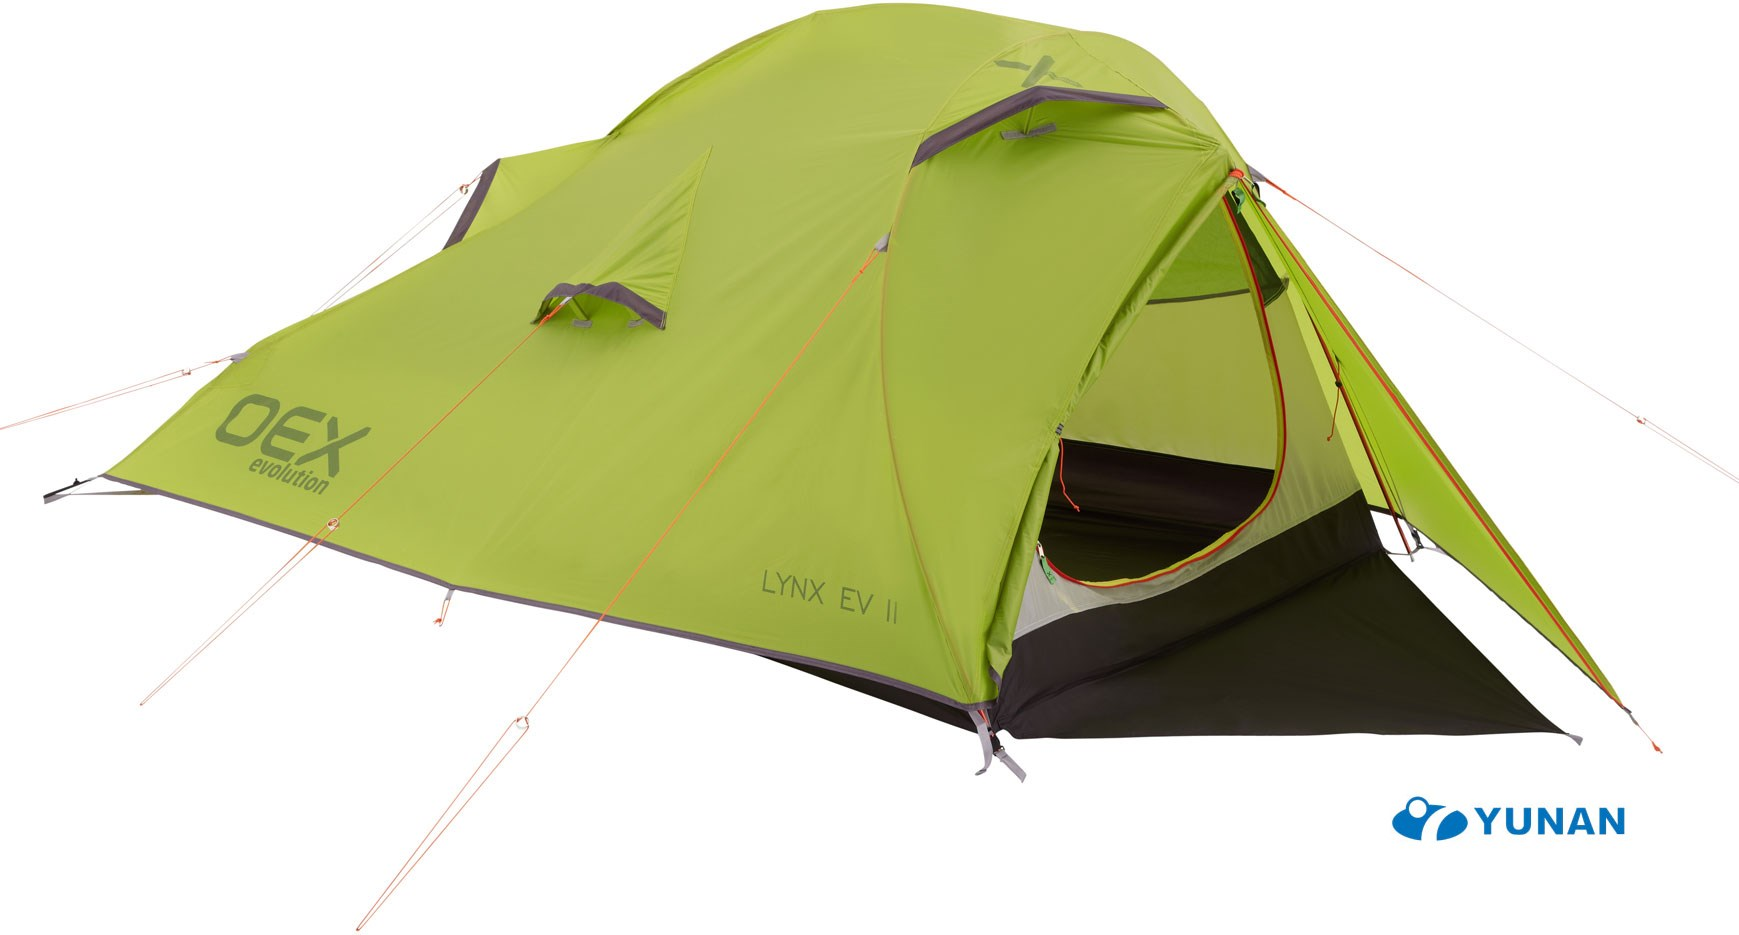 preload  sc 1 st  GO Outdoors & OEX Lynx EV II Backpacking Tent | GO Outdoors